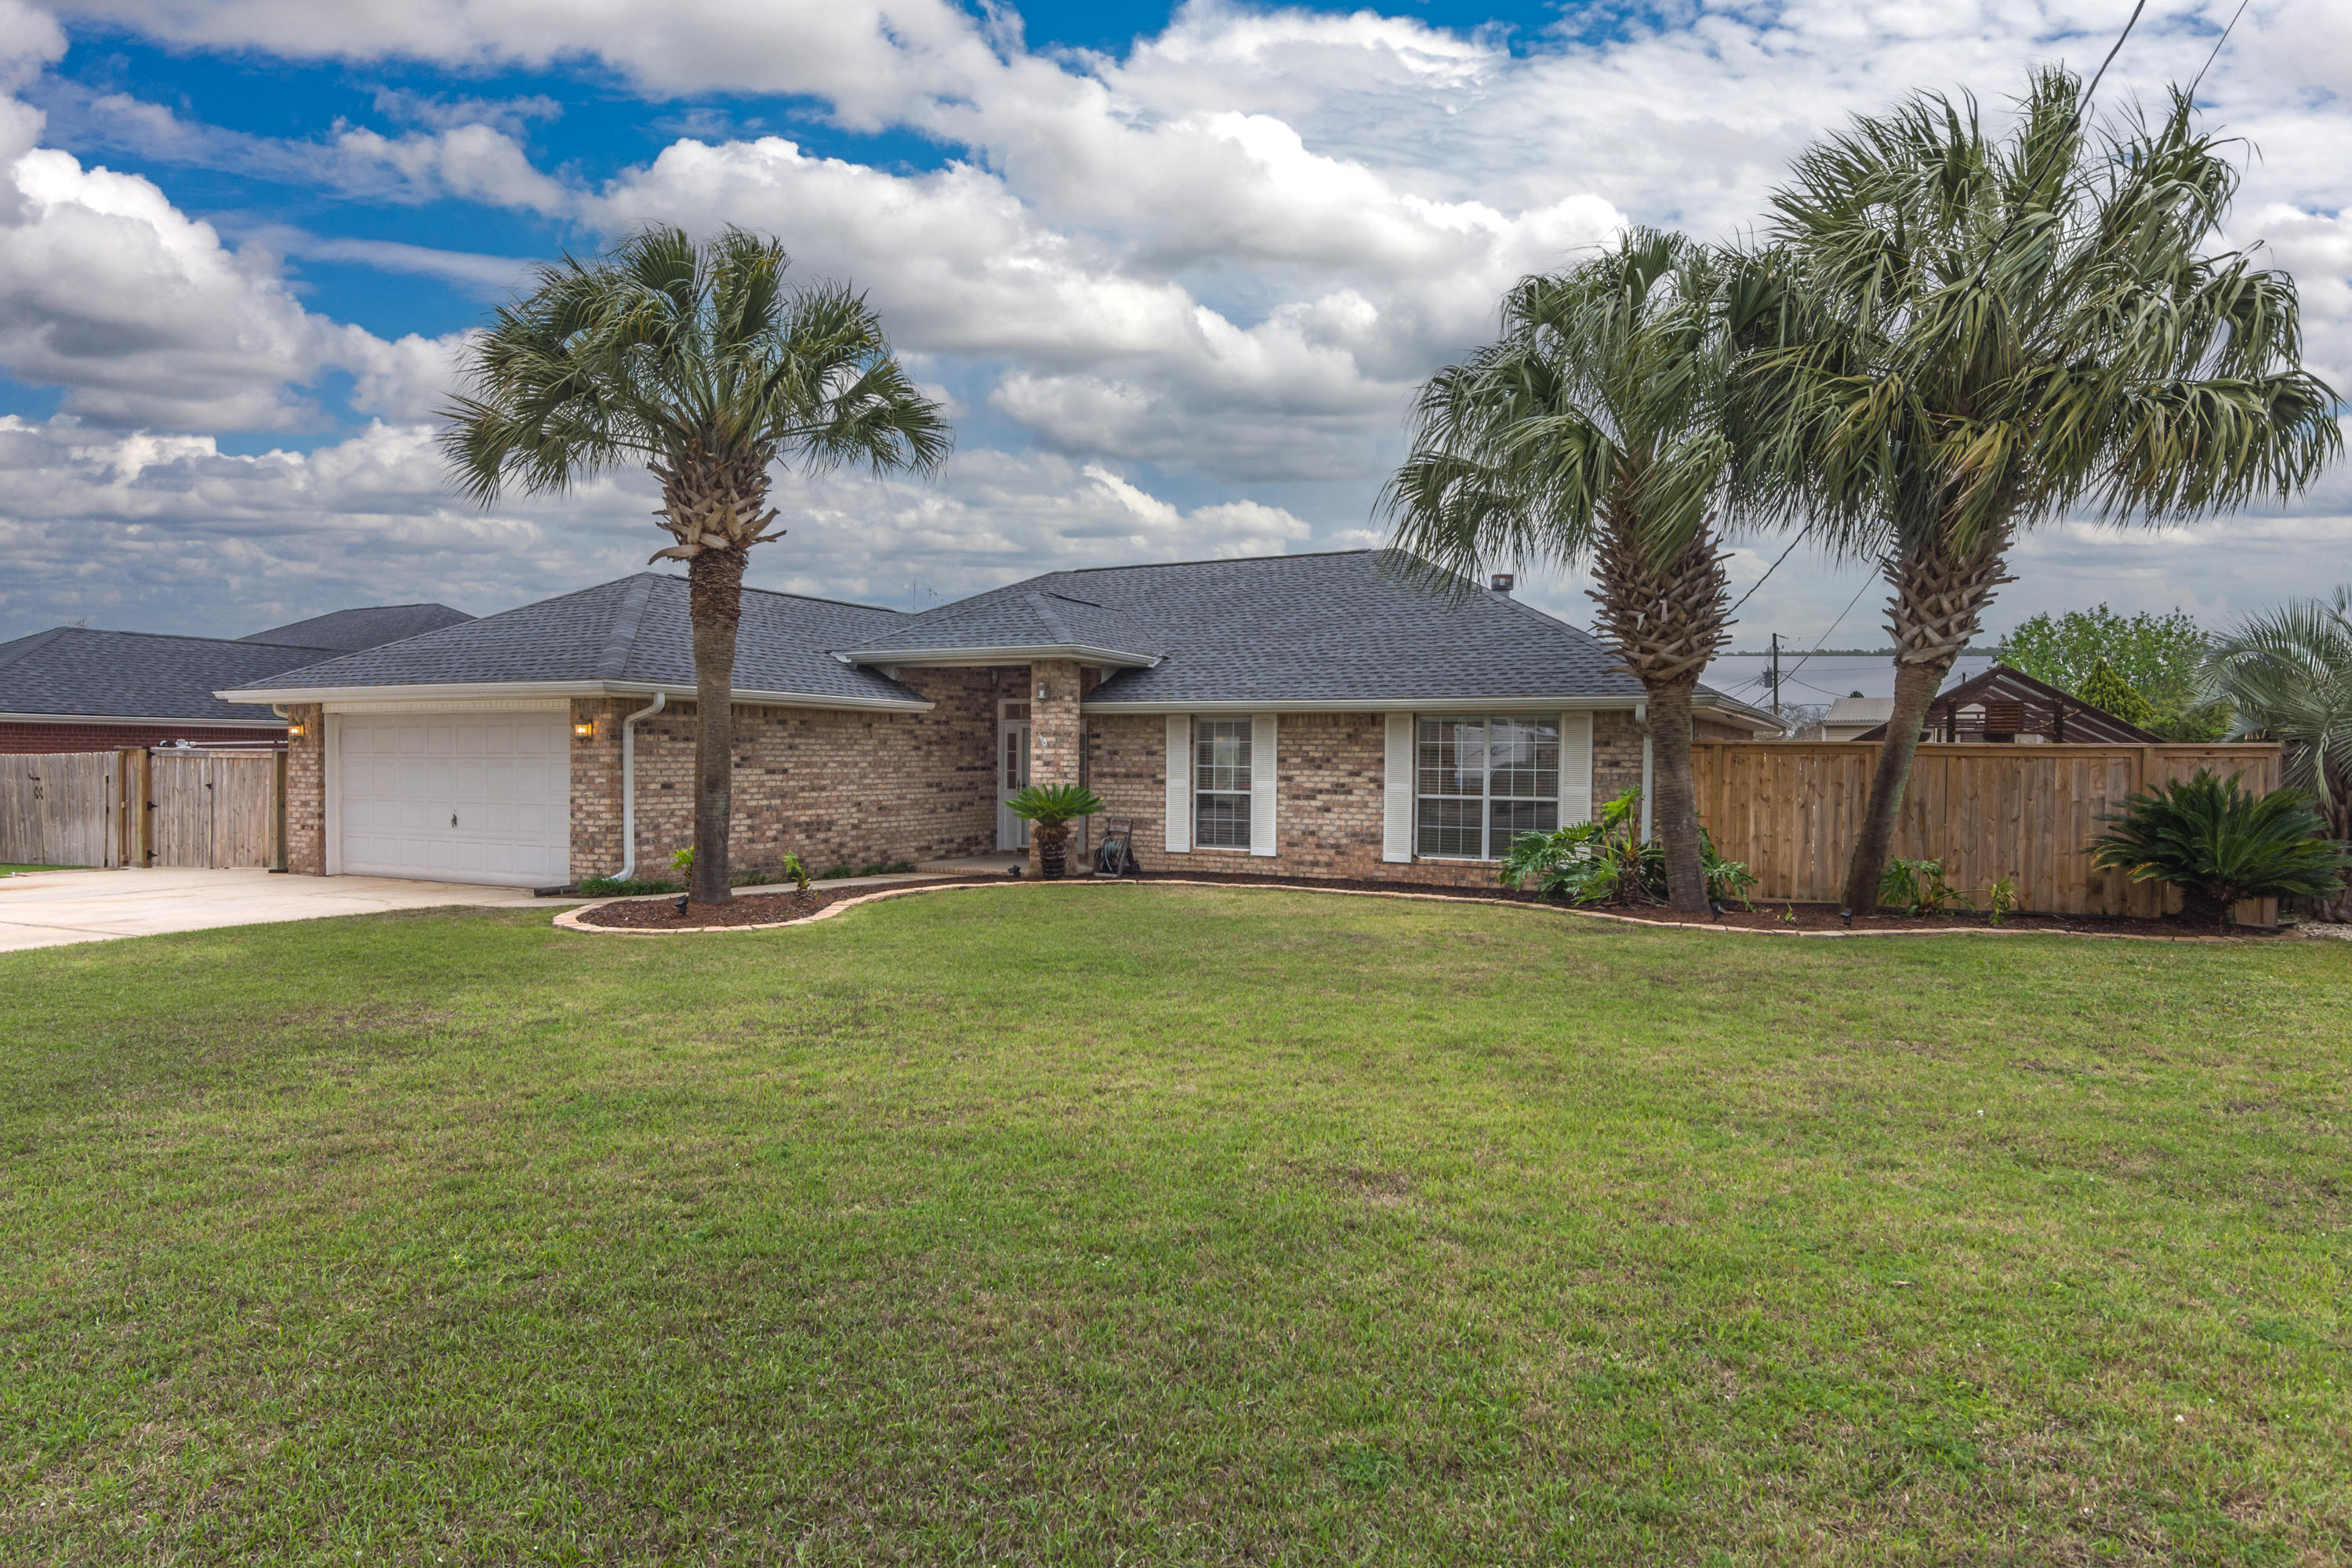 Photo of home for sale at 4863 Traxx, Crestview FL